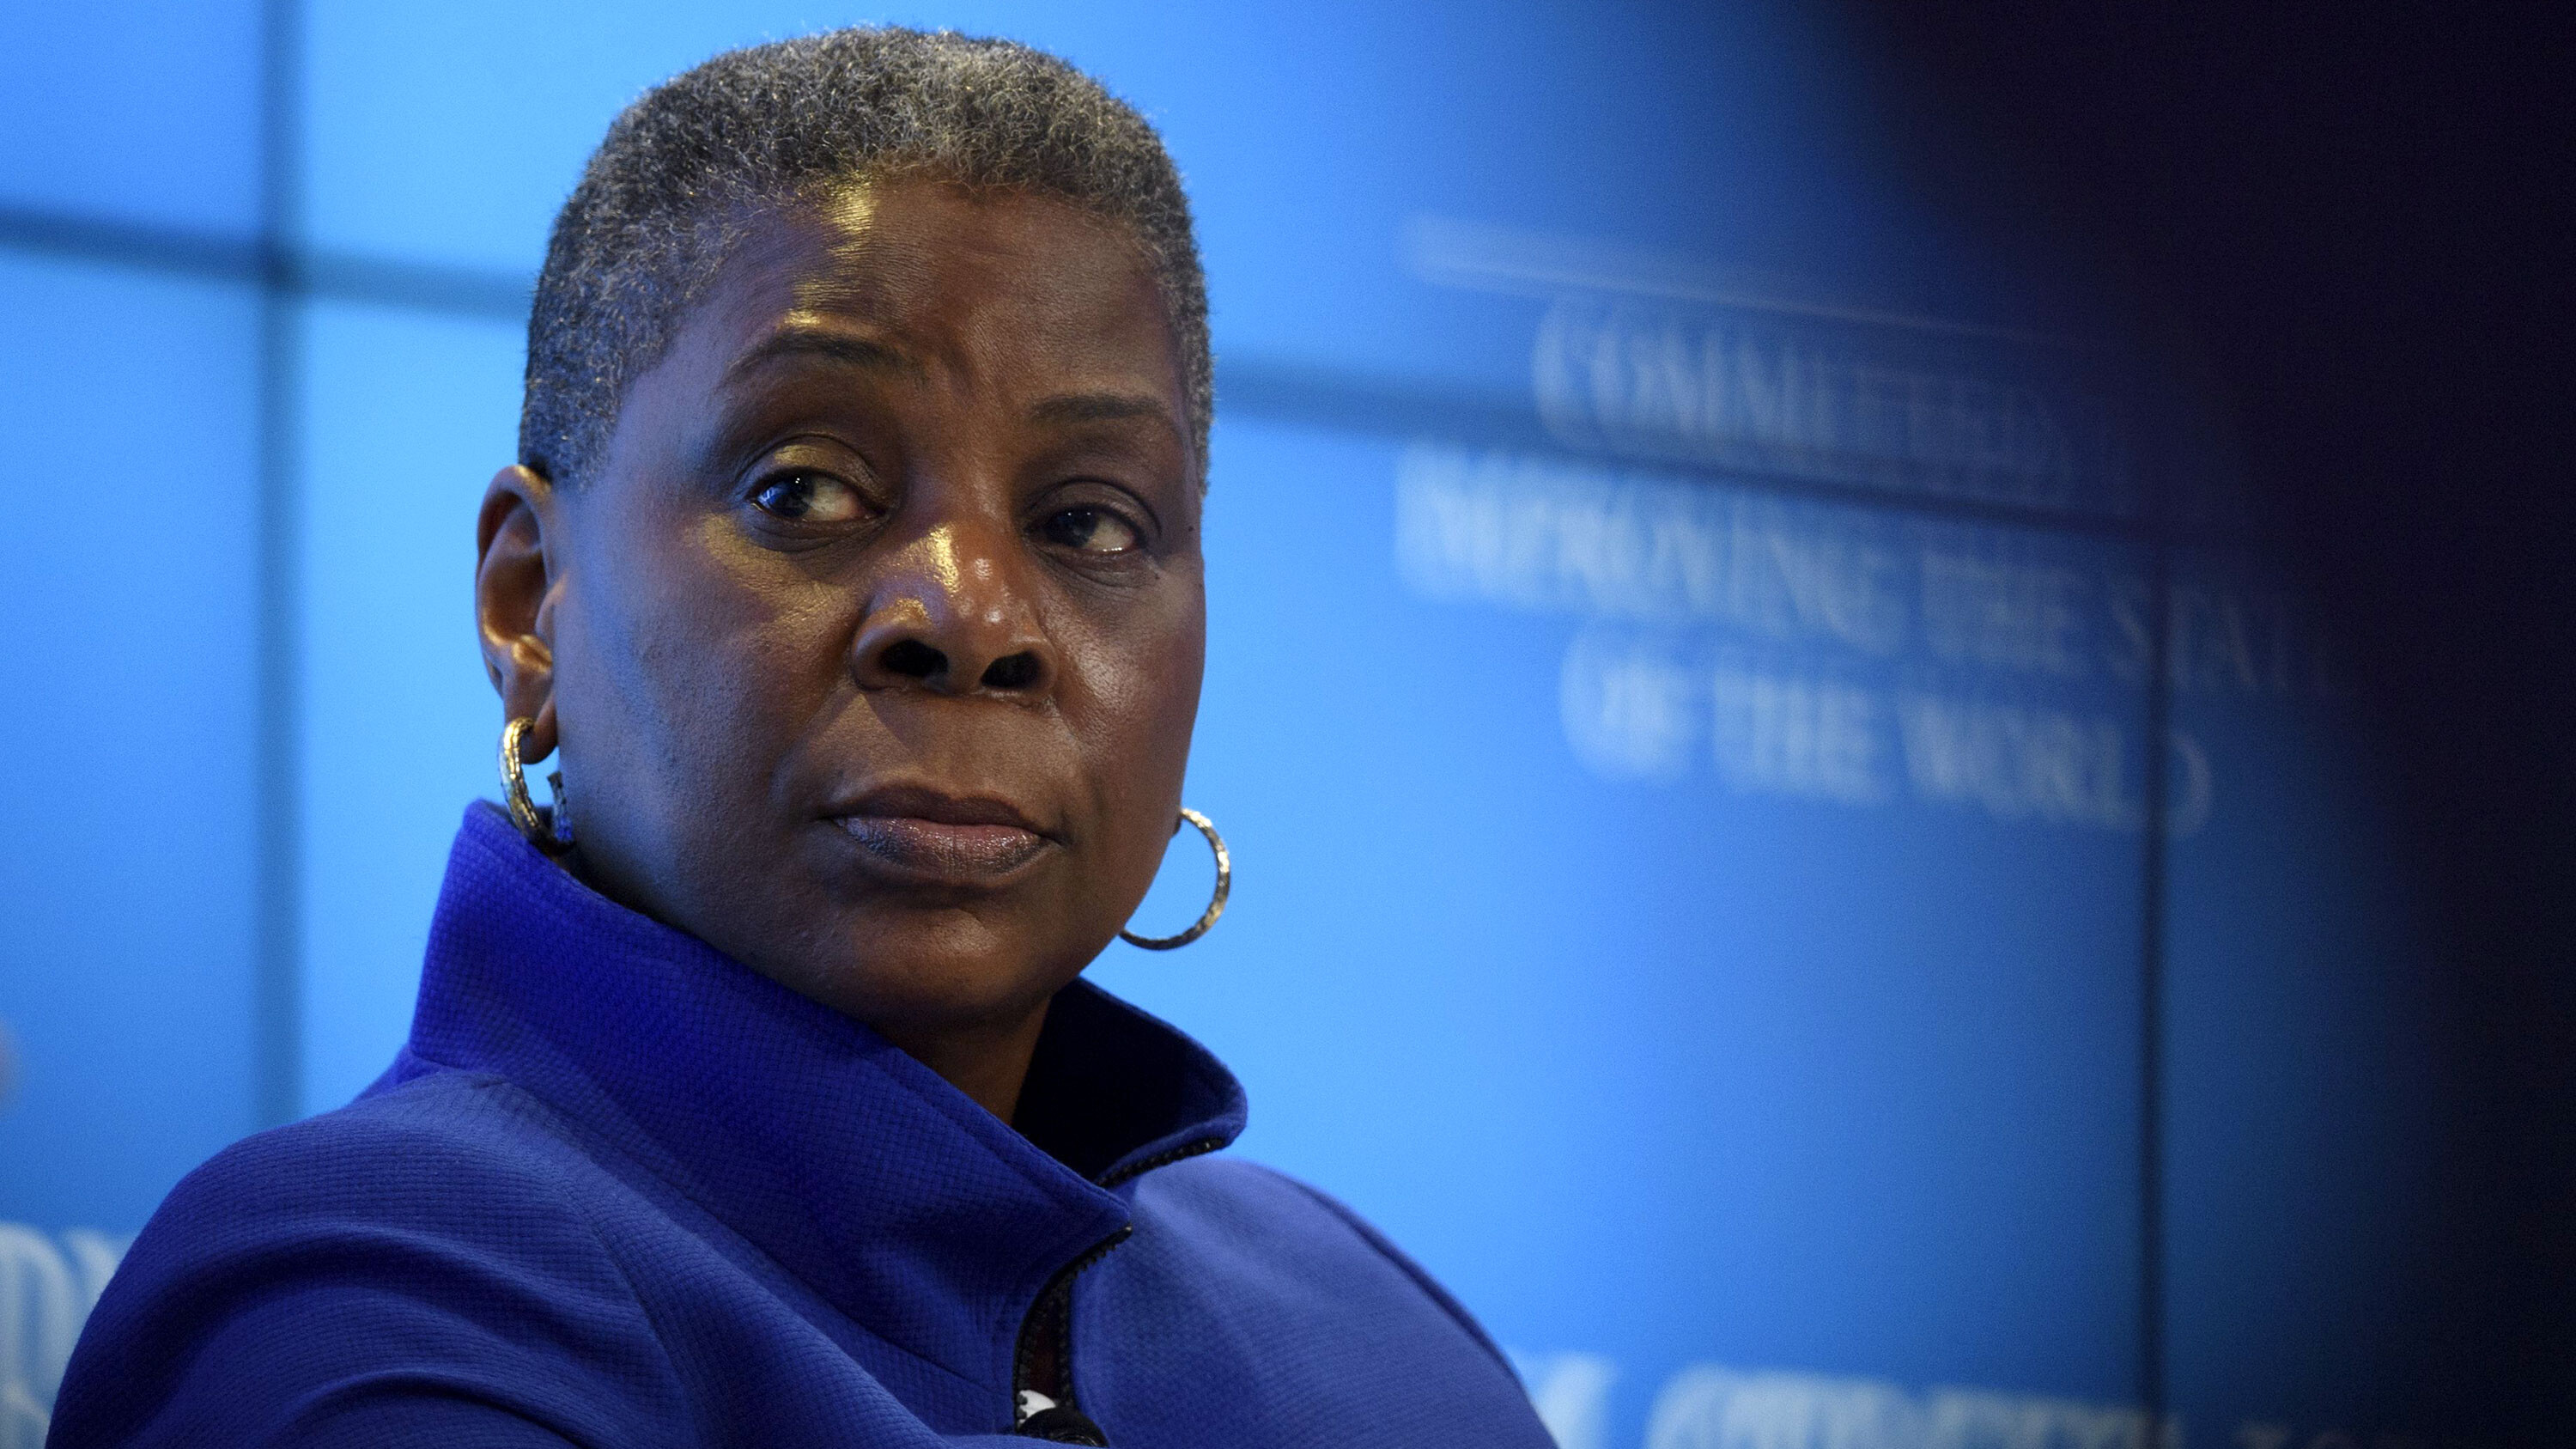 Ursula Burns hired to lead embattled consulting firm Teneo